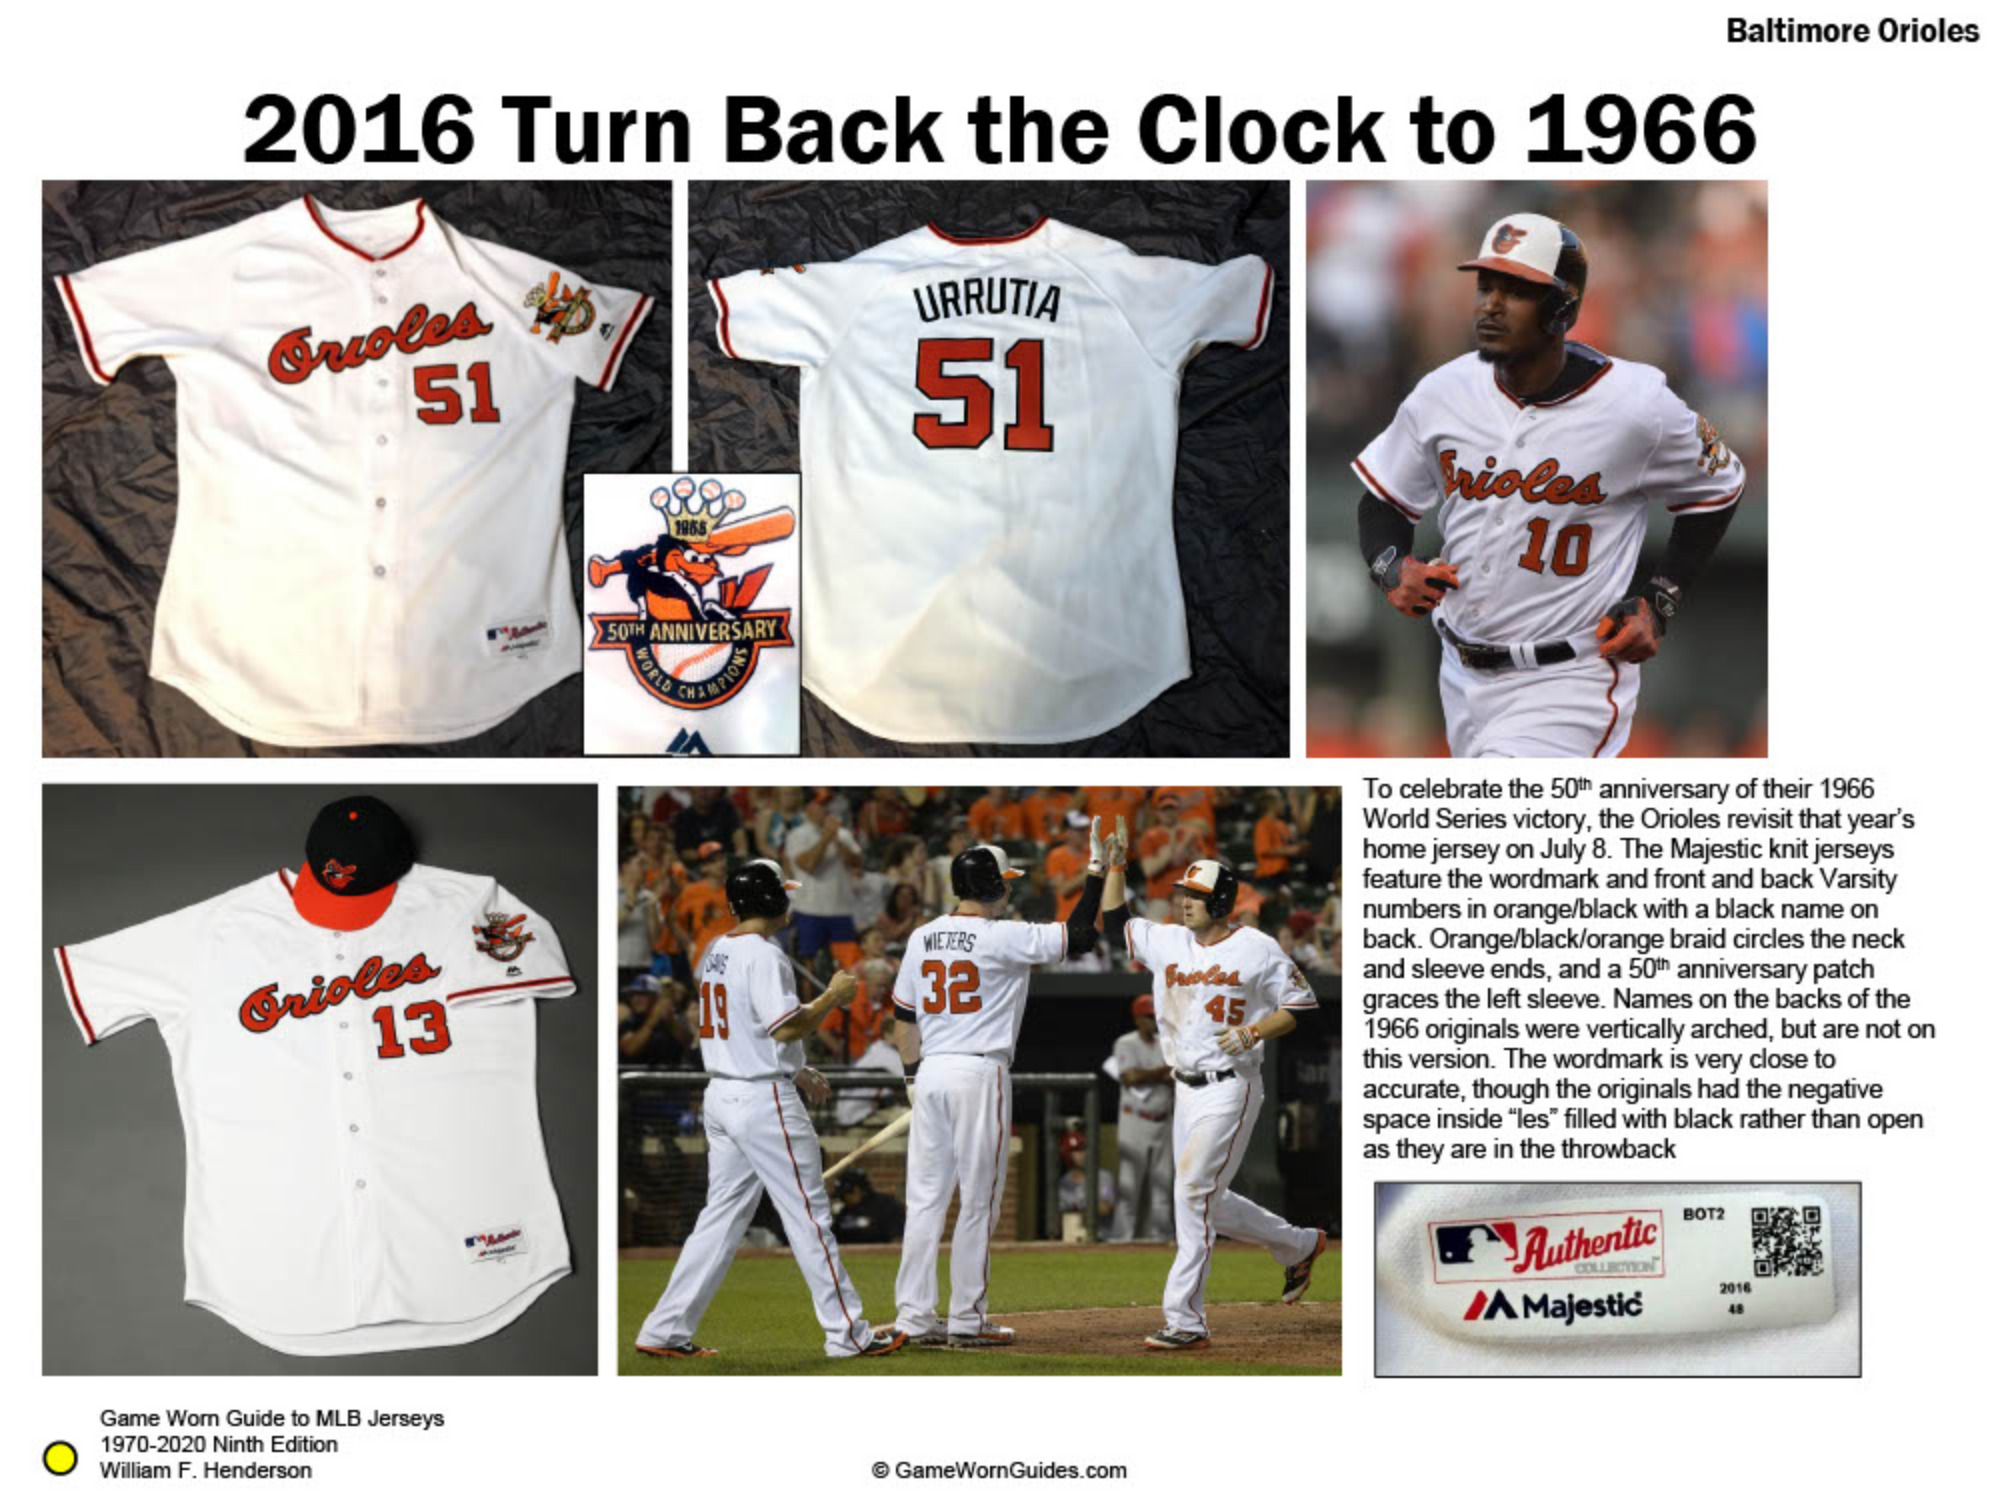 Game Worn Guide to Baltimore Orioles Jerseys (1970-2020)